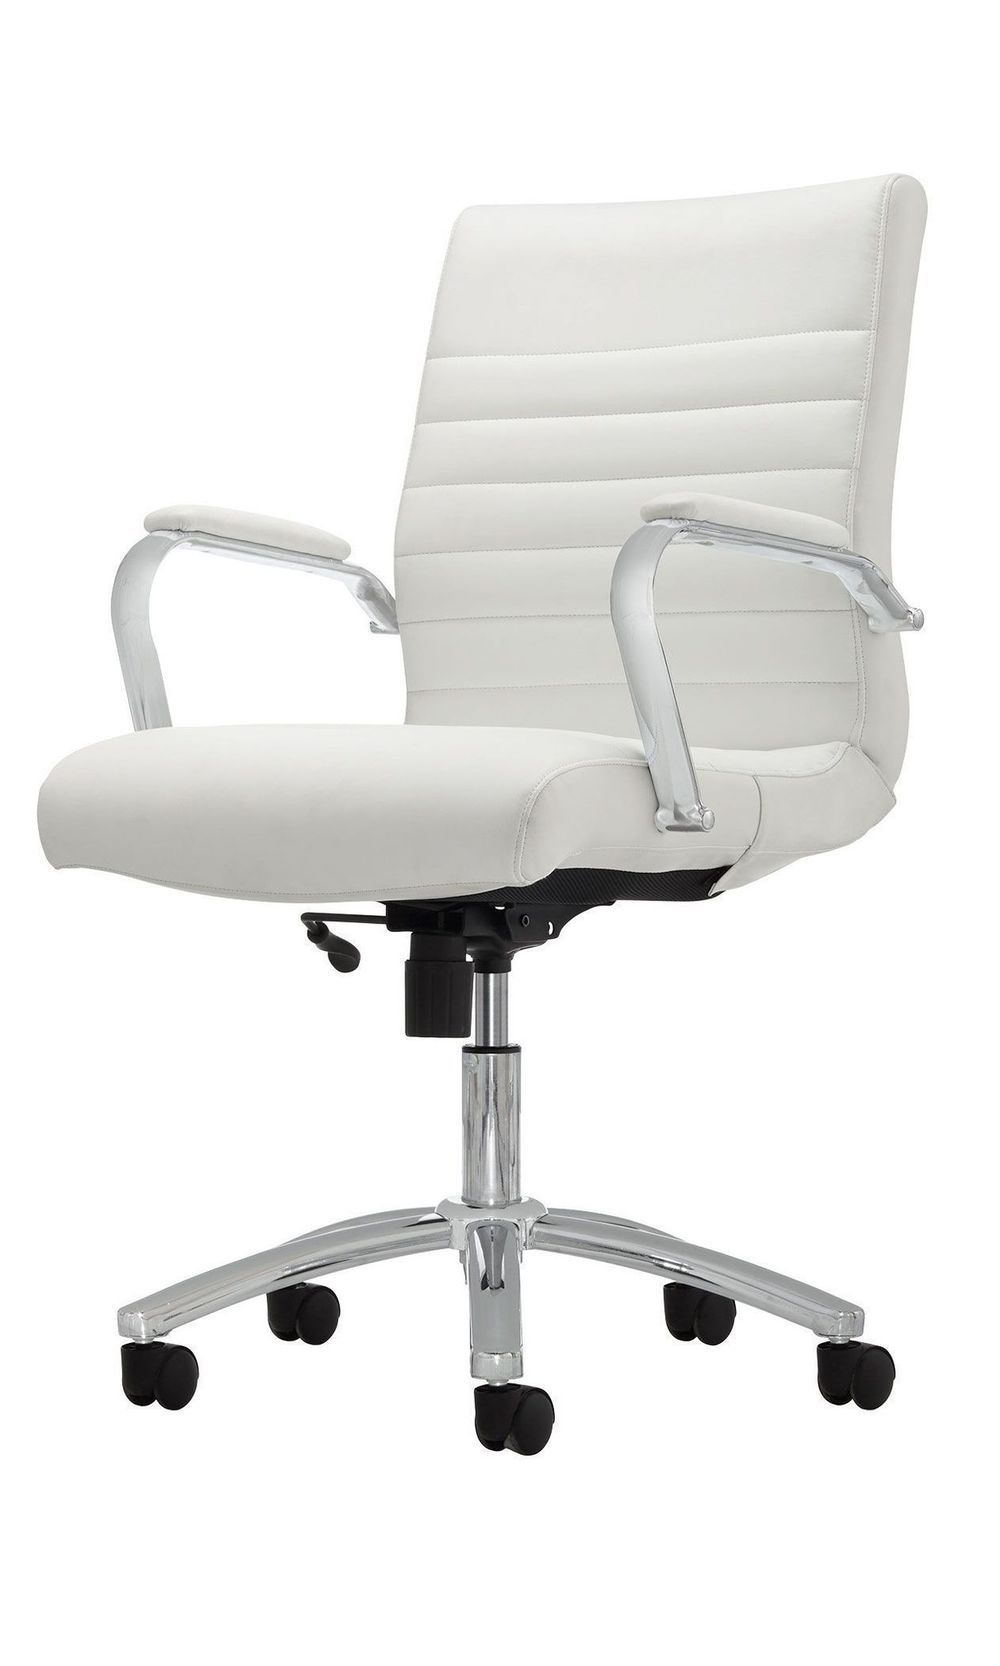 Reale Modern Comfort Winsley Chair